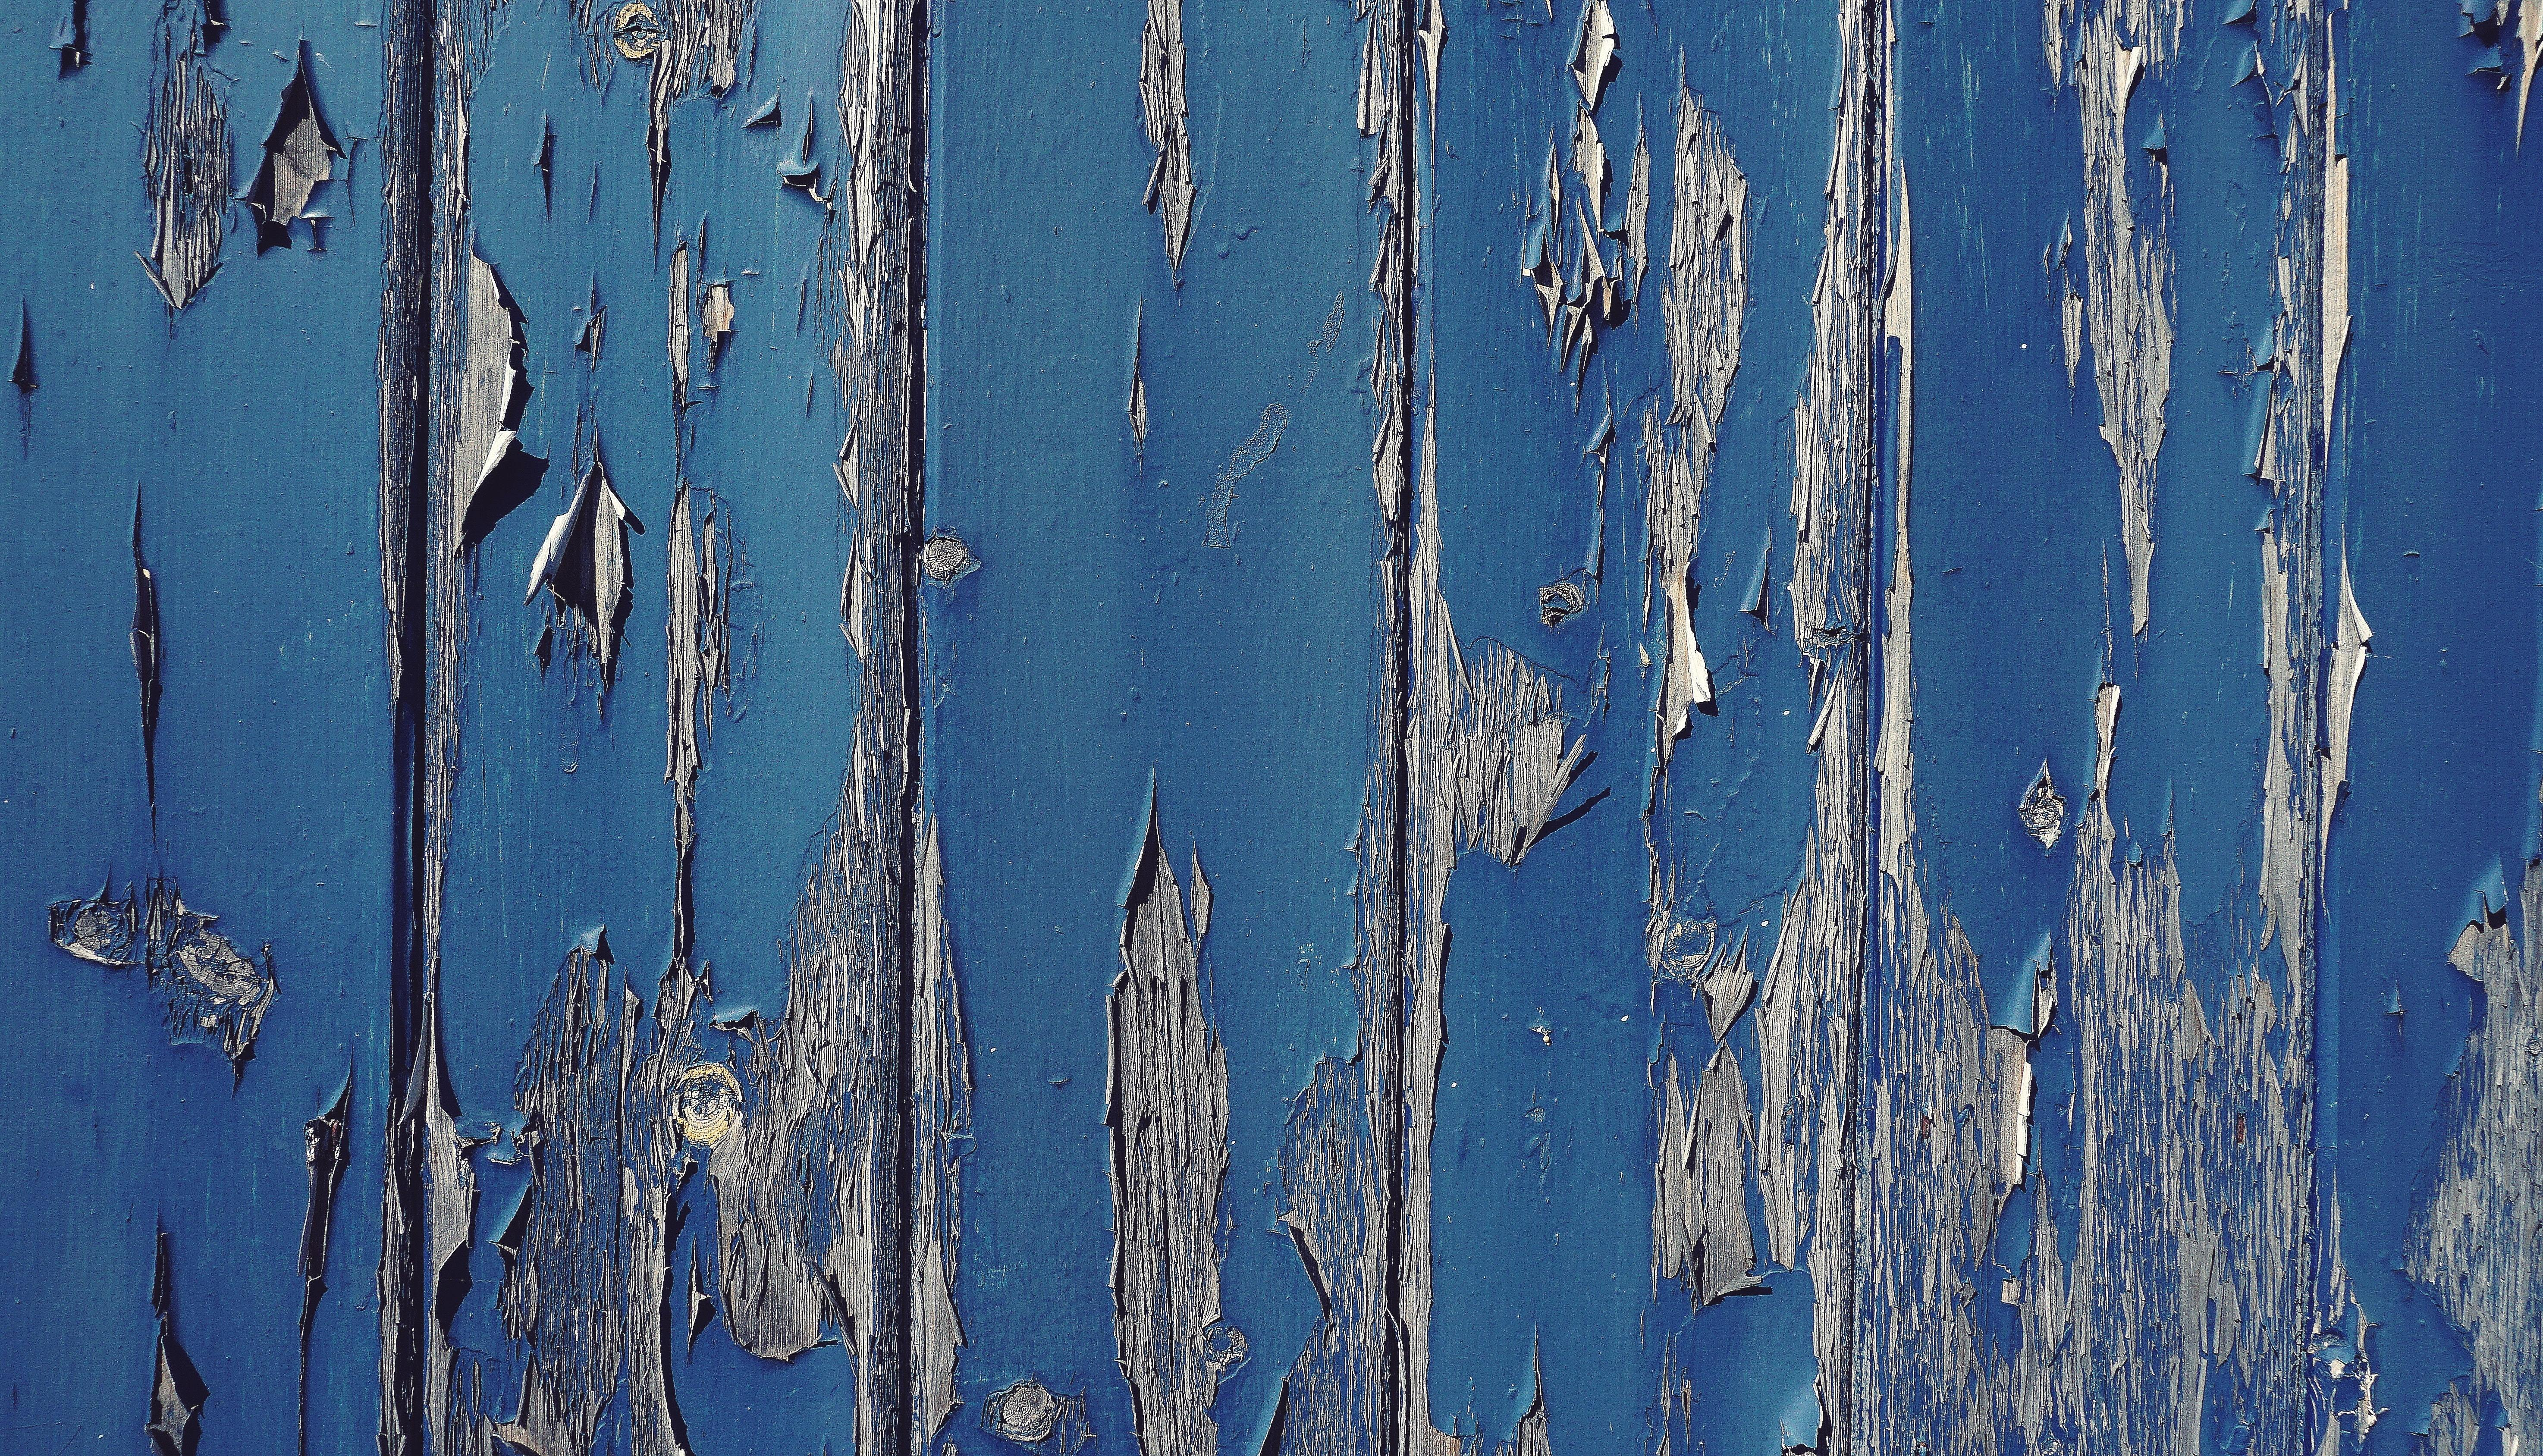 Gray wood with cracked blue paint